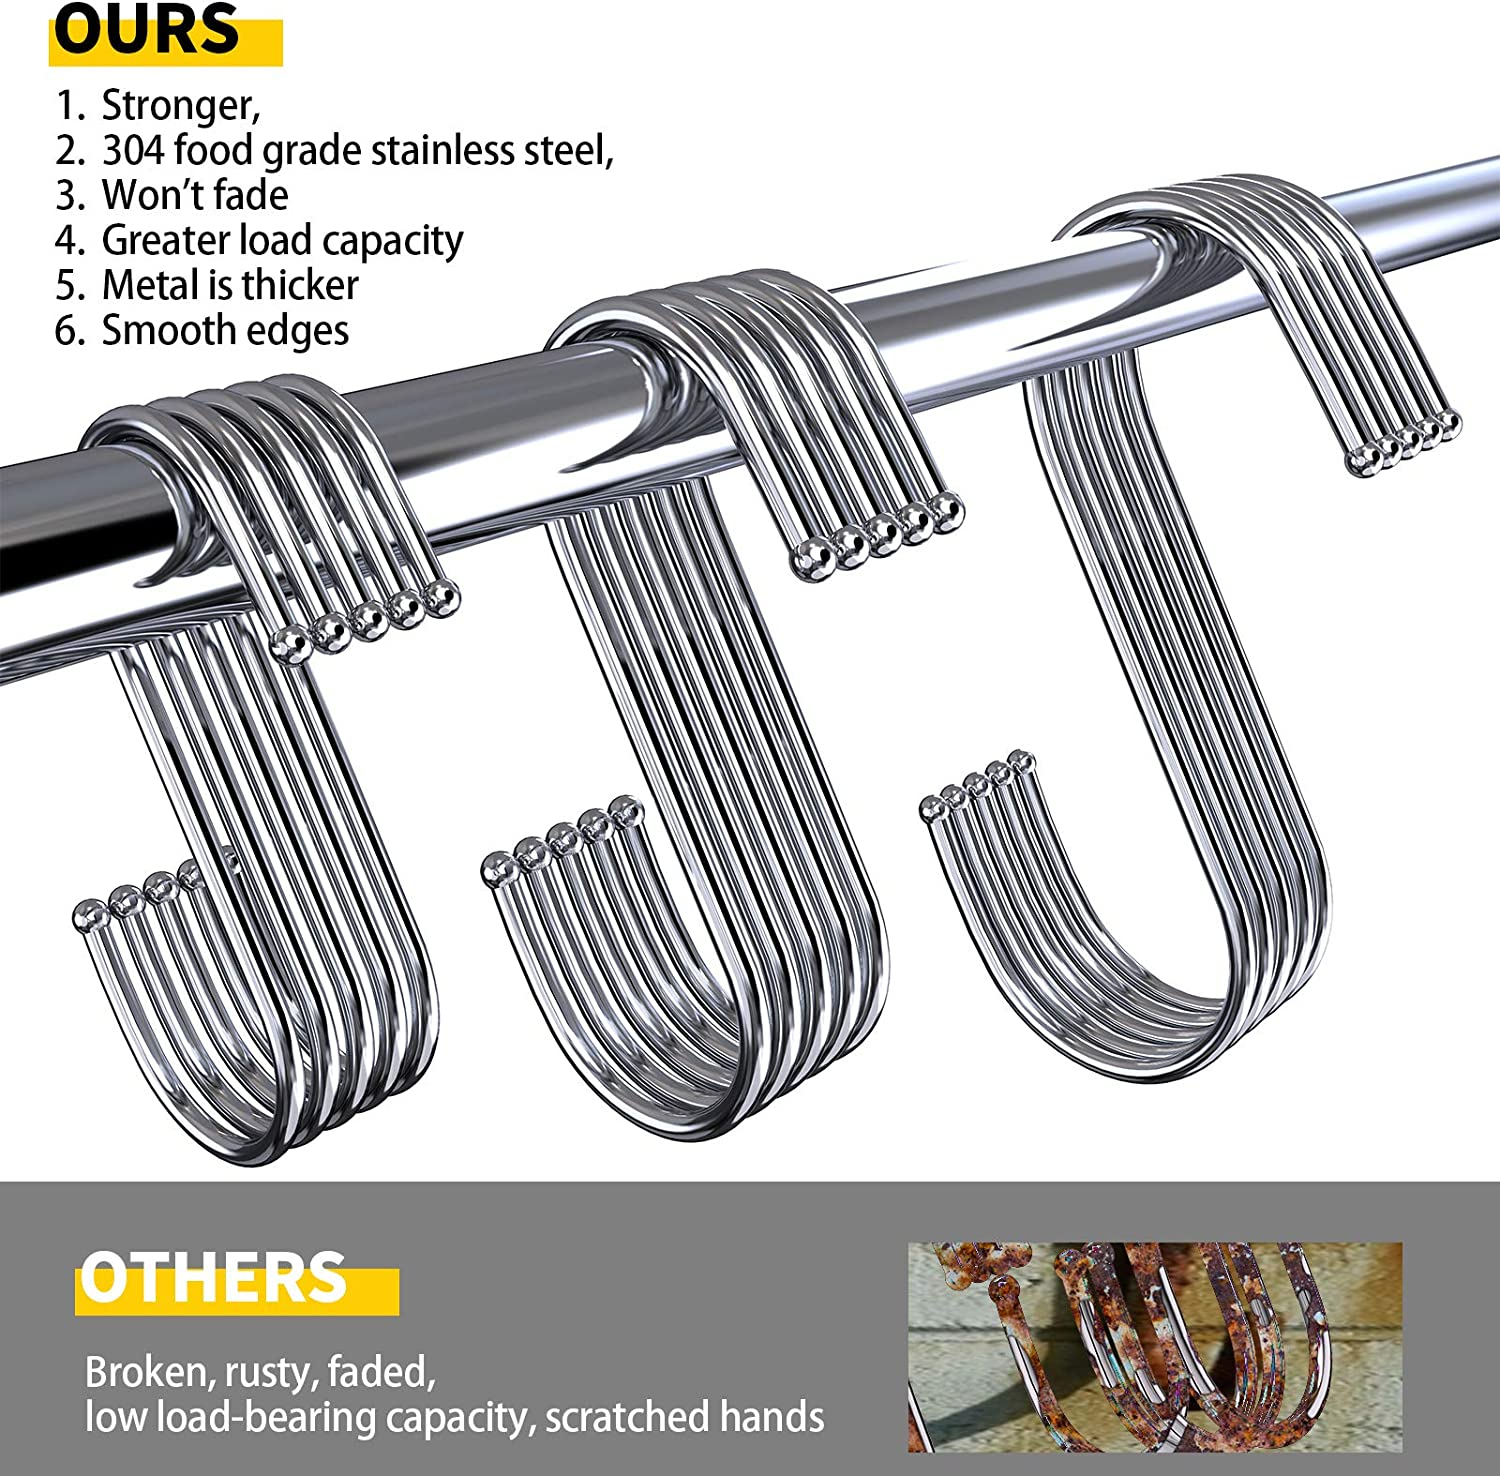 SIPU S Hooks Heavy Duty,Stainless Steel Hooks 25 Pack,Portable Metal Hanging Hook in The Kitchen and Bathroom,3.9//3.1//2.36 Inch Hooks.